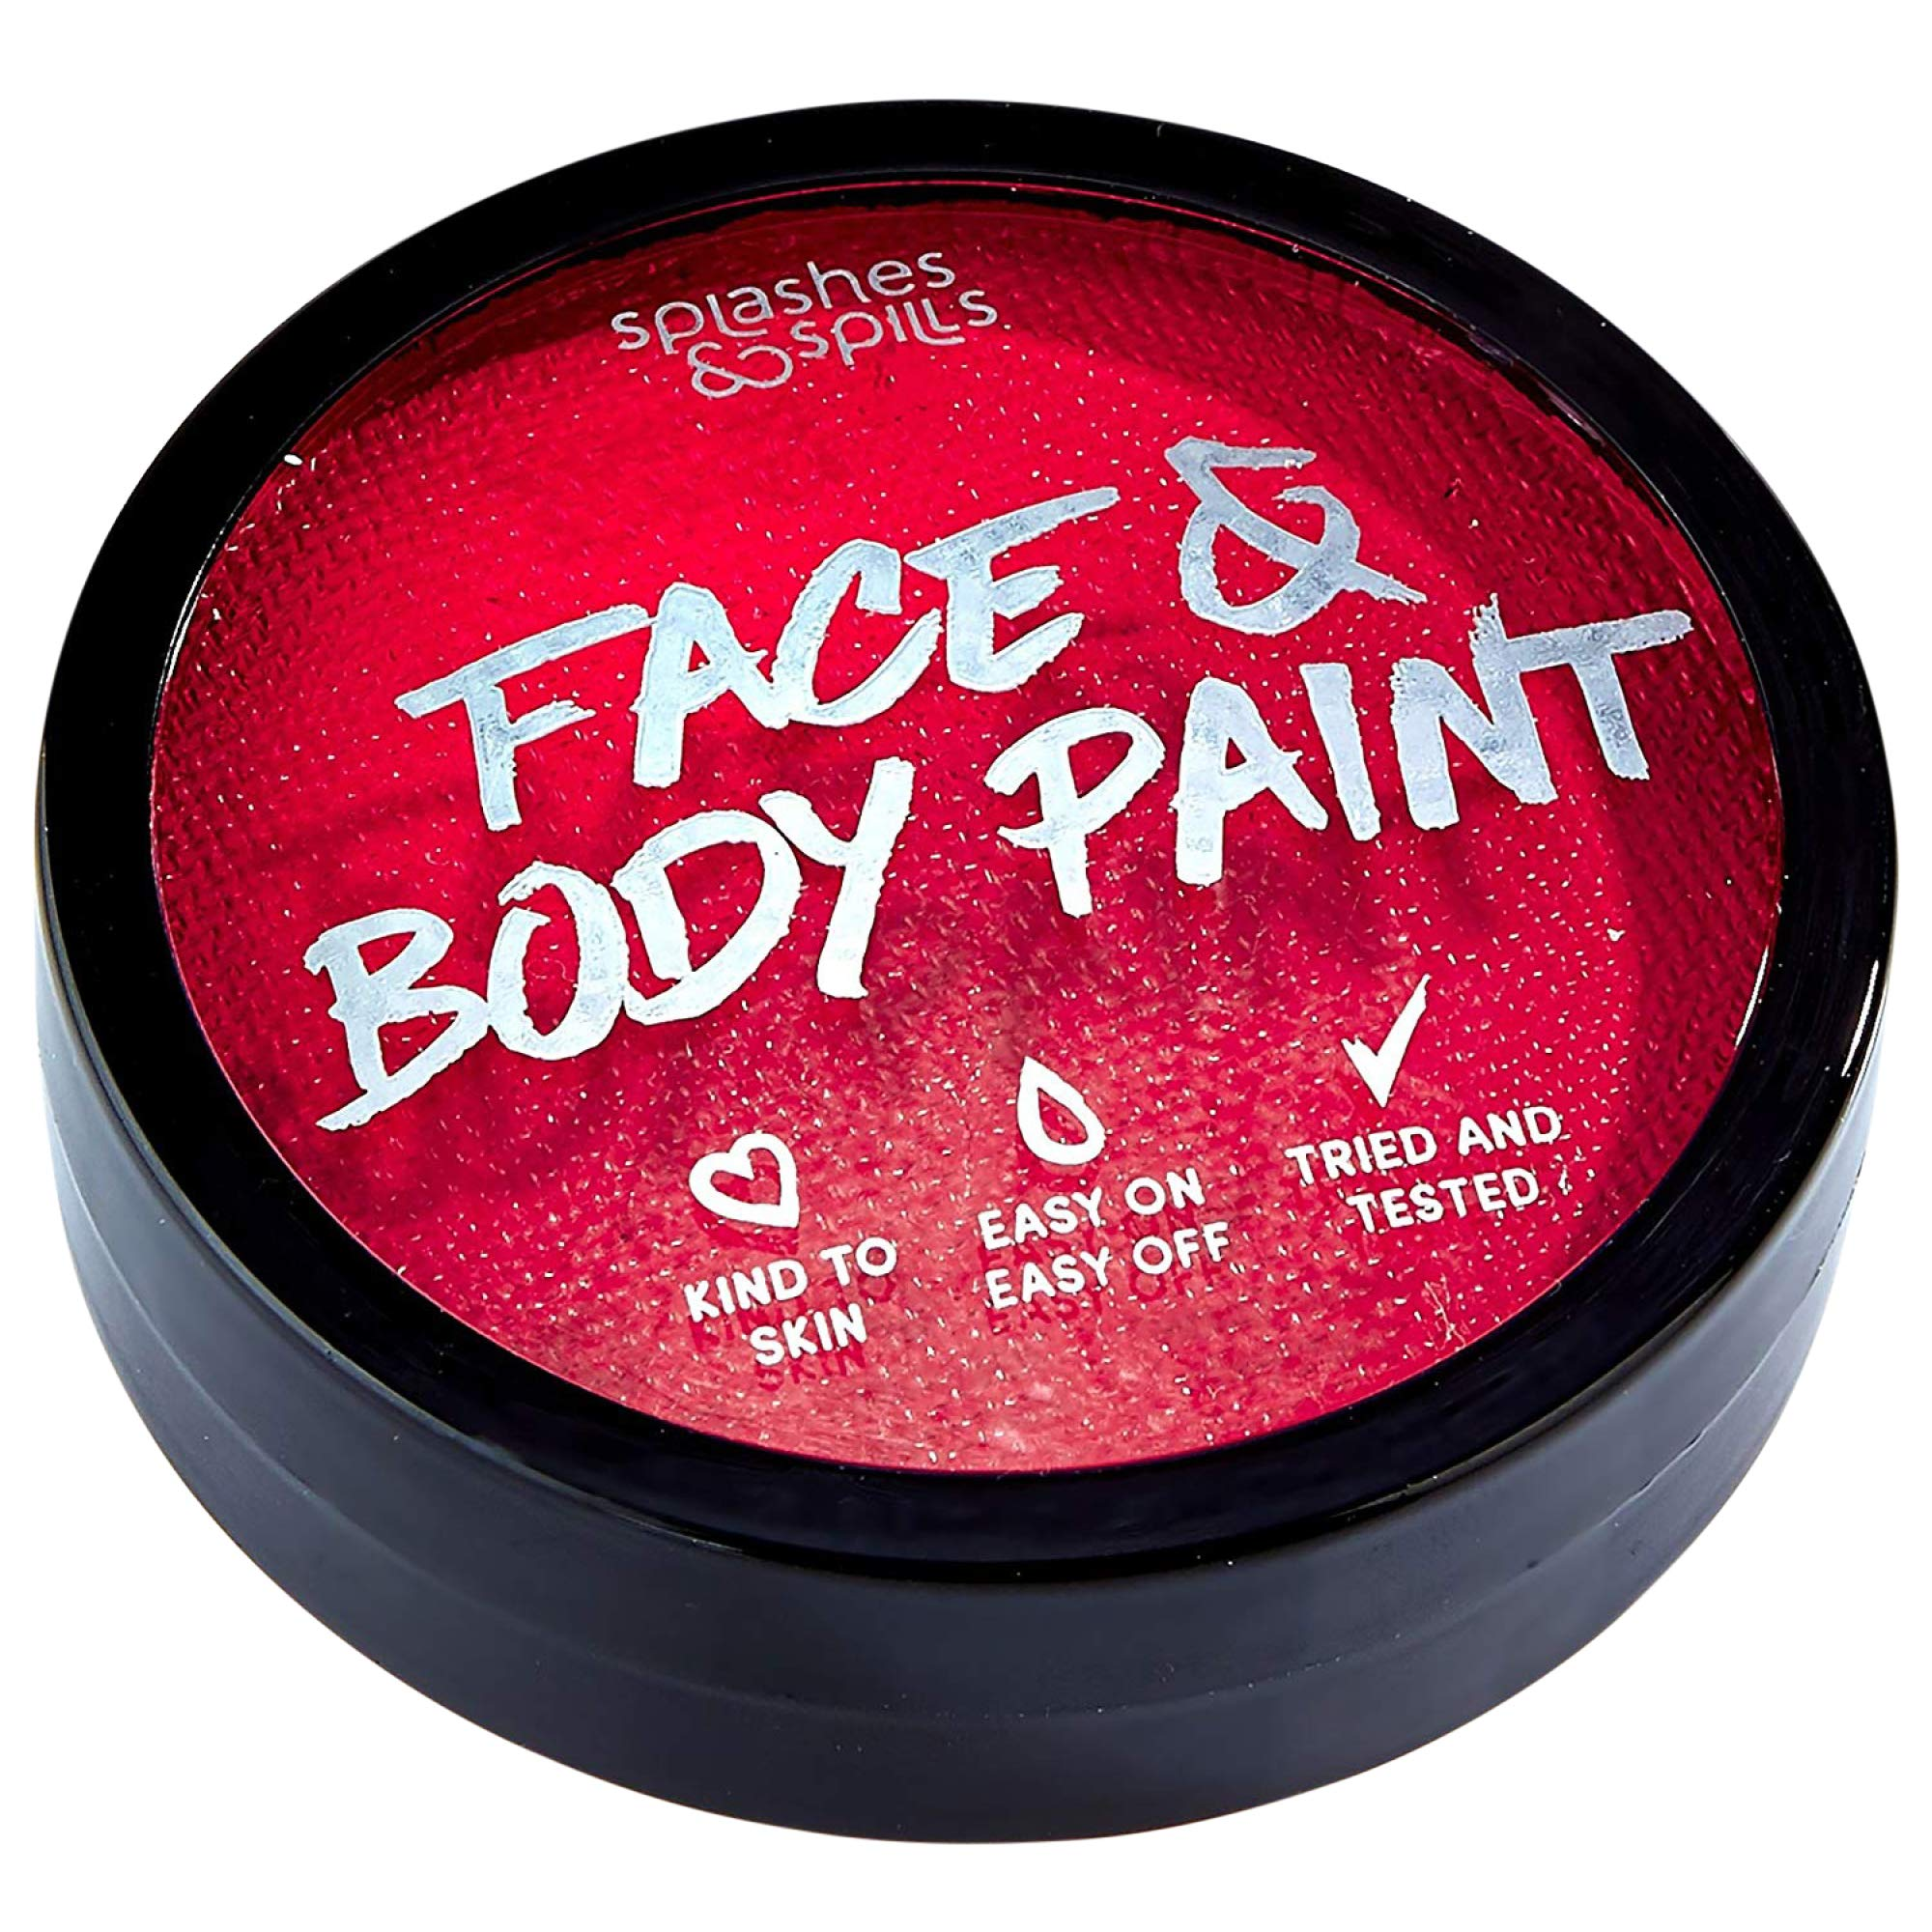 Water Activated Face and Body Paint - Red, 18g Cake Tub - Pretend Costume and Dress Up Makeup by Splashes & Spills by Splashes & Spills